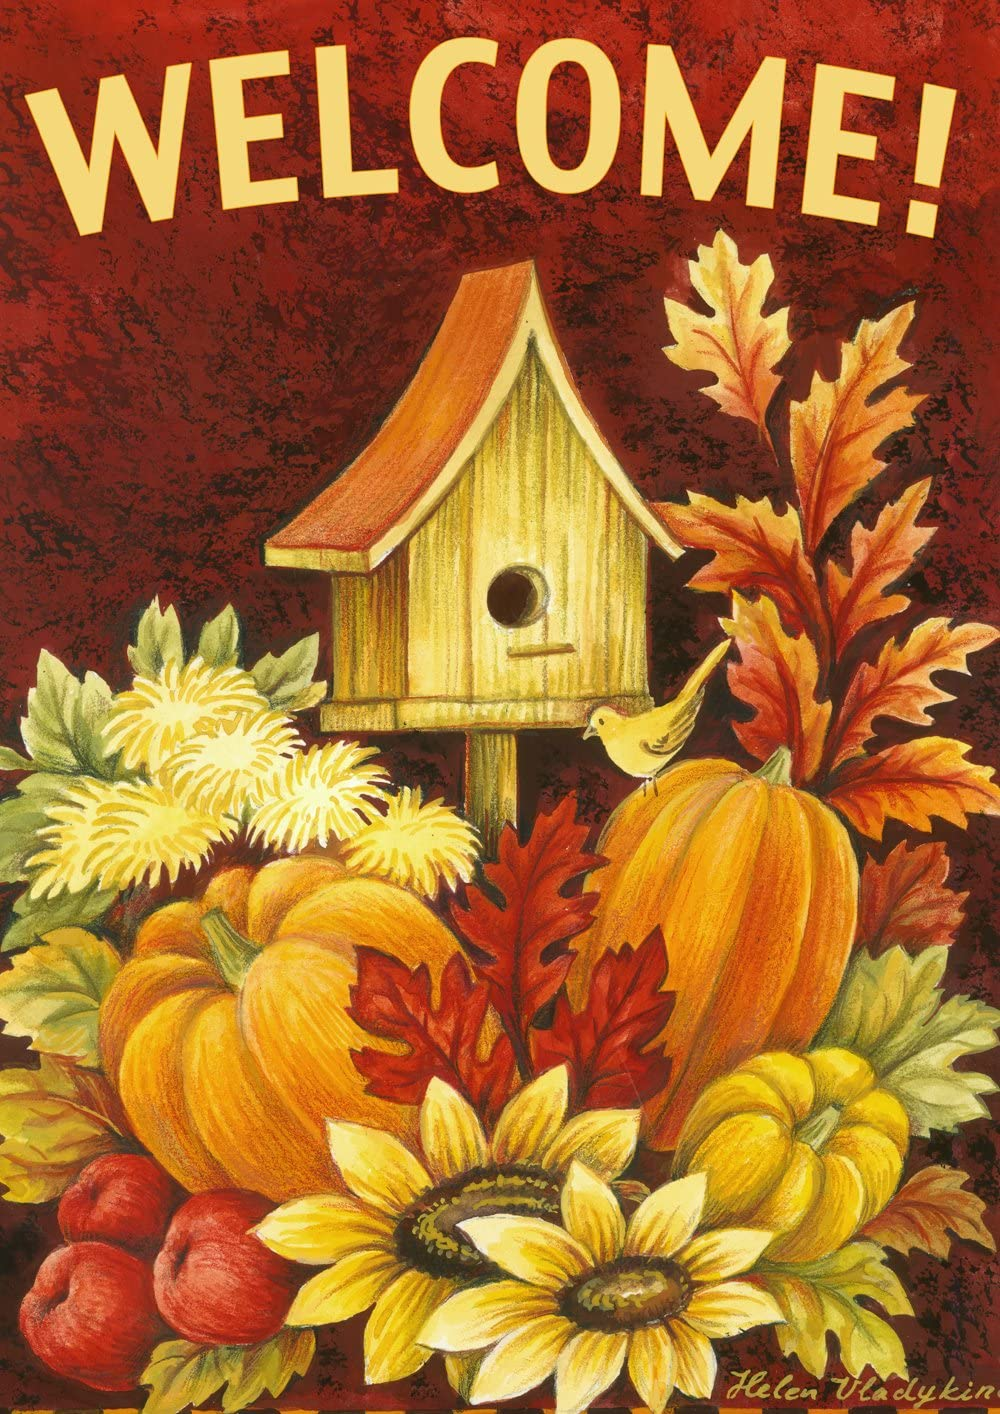 Toland Home Garden Fall Birdhouse 12.5 x 18 Inch Decorative Autumn Harvest Welcome Double Sided Garden Flag